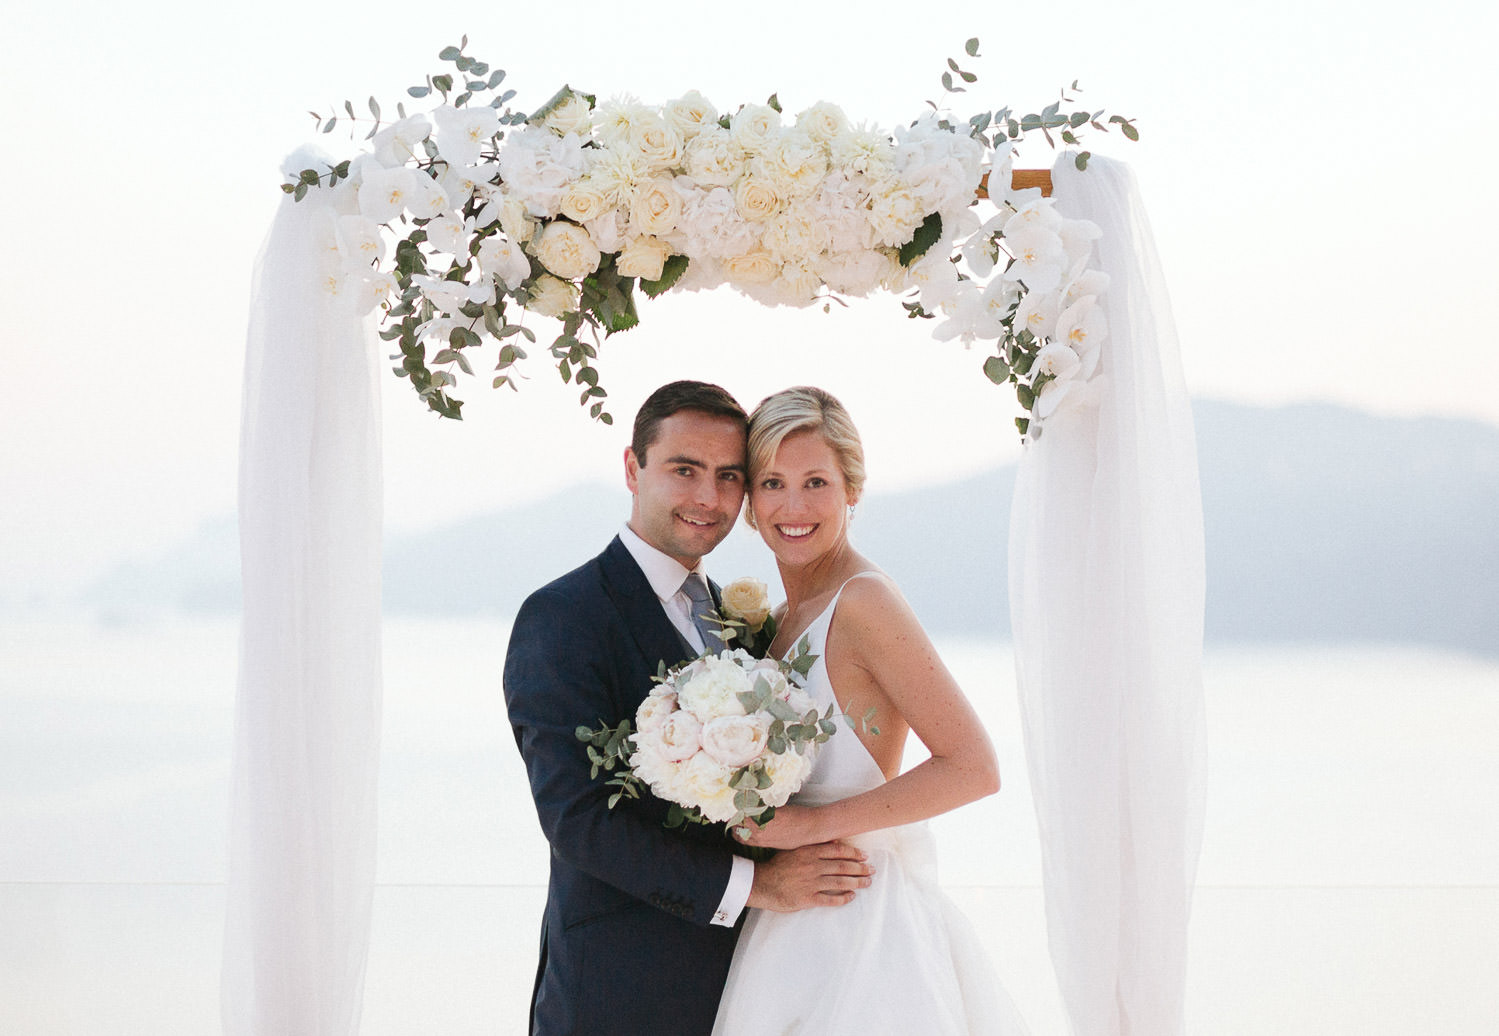 Luxury wedding in Ravello - Italian destination wedding photographer